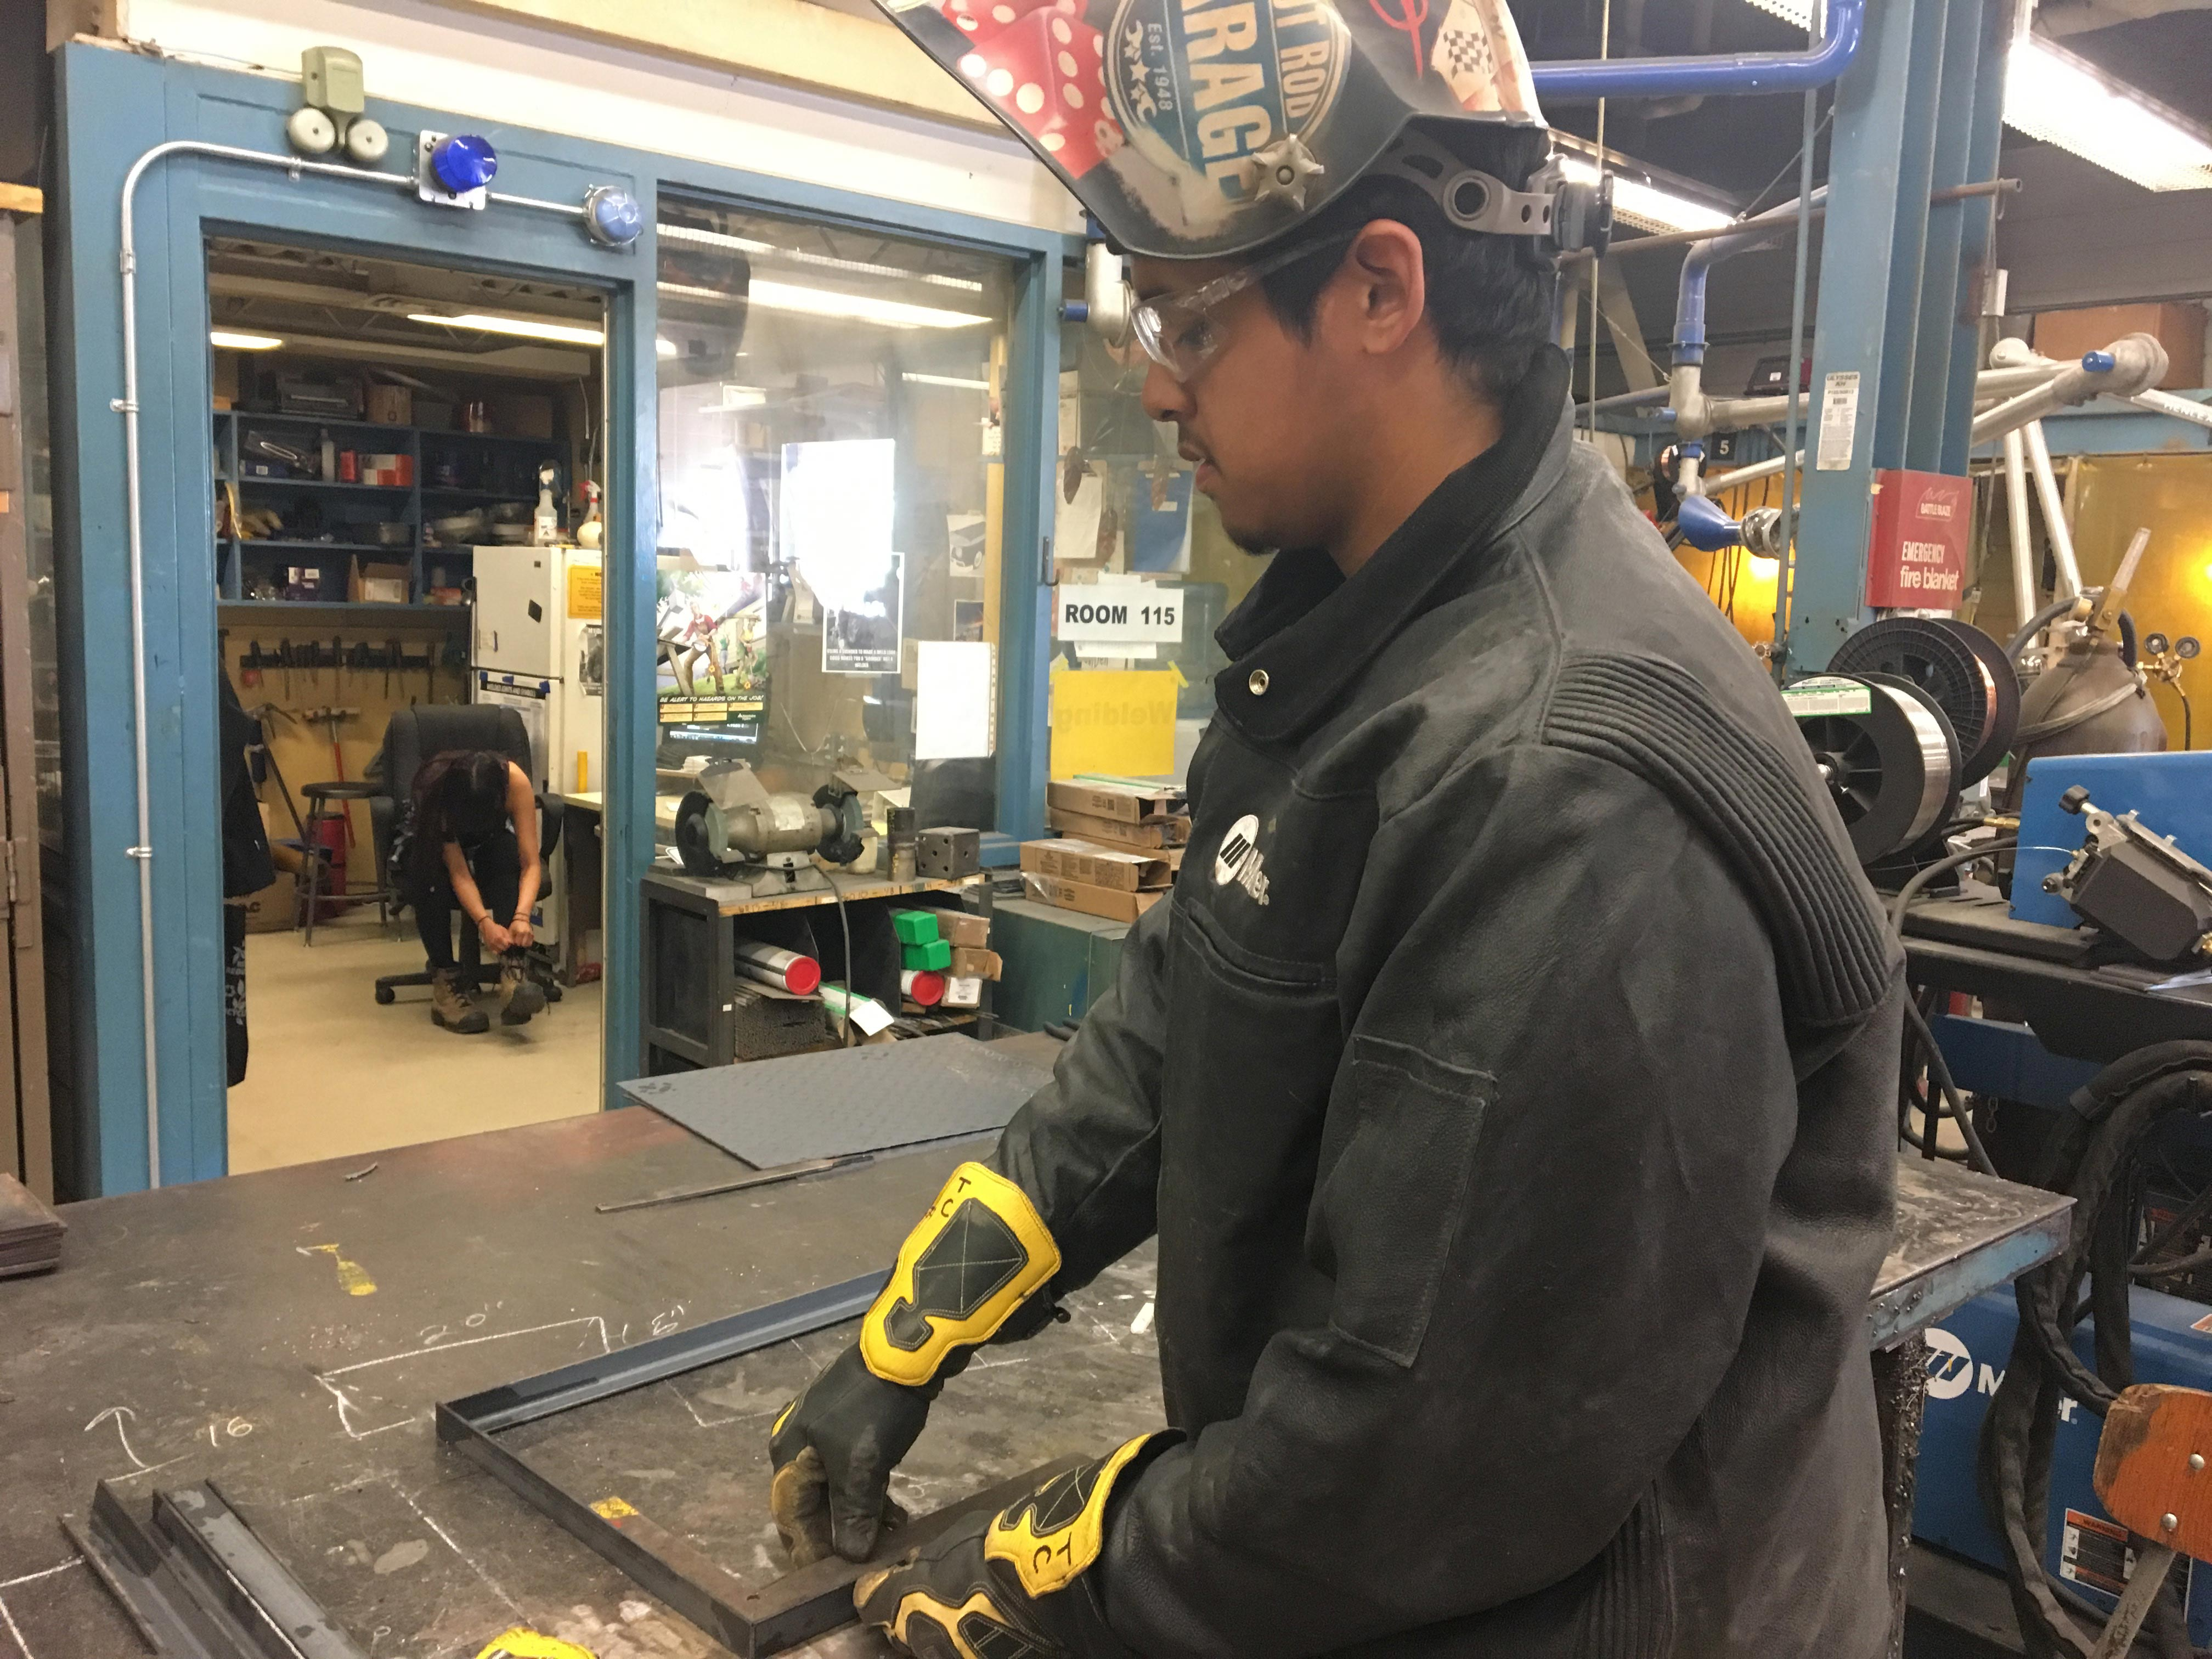 17-year-old Trevor Creely at work in the welding shop. Photo: Brittany Hobson/APTN